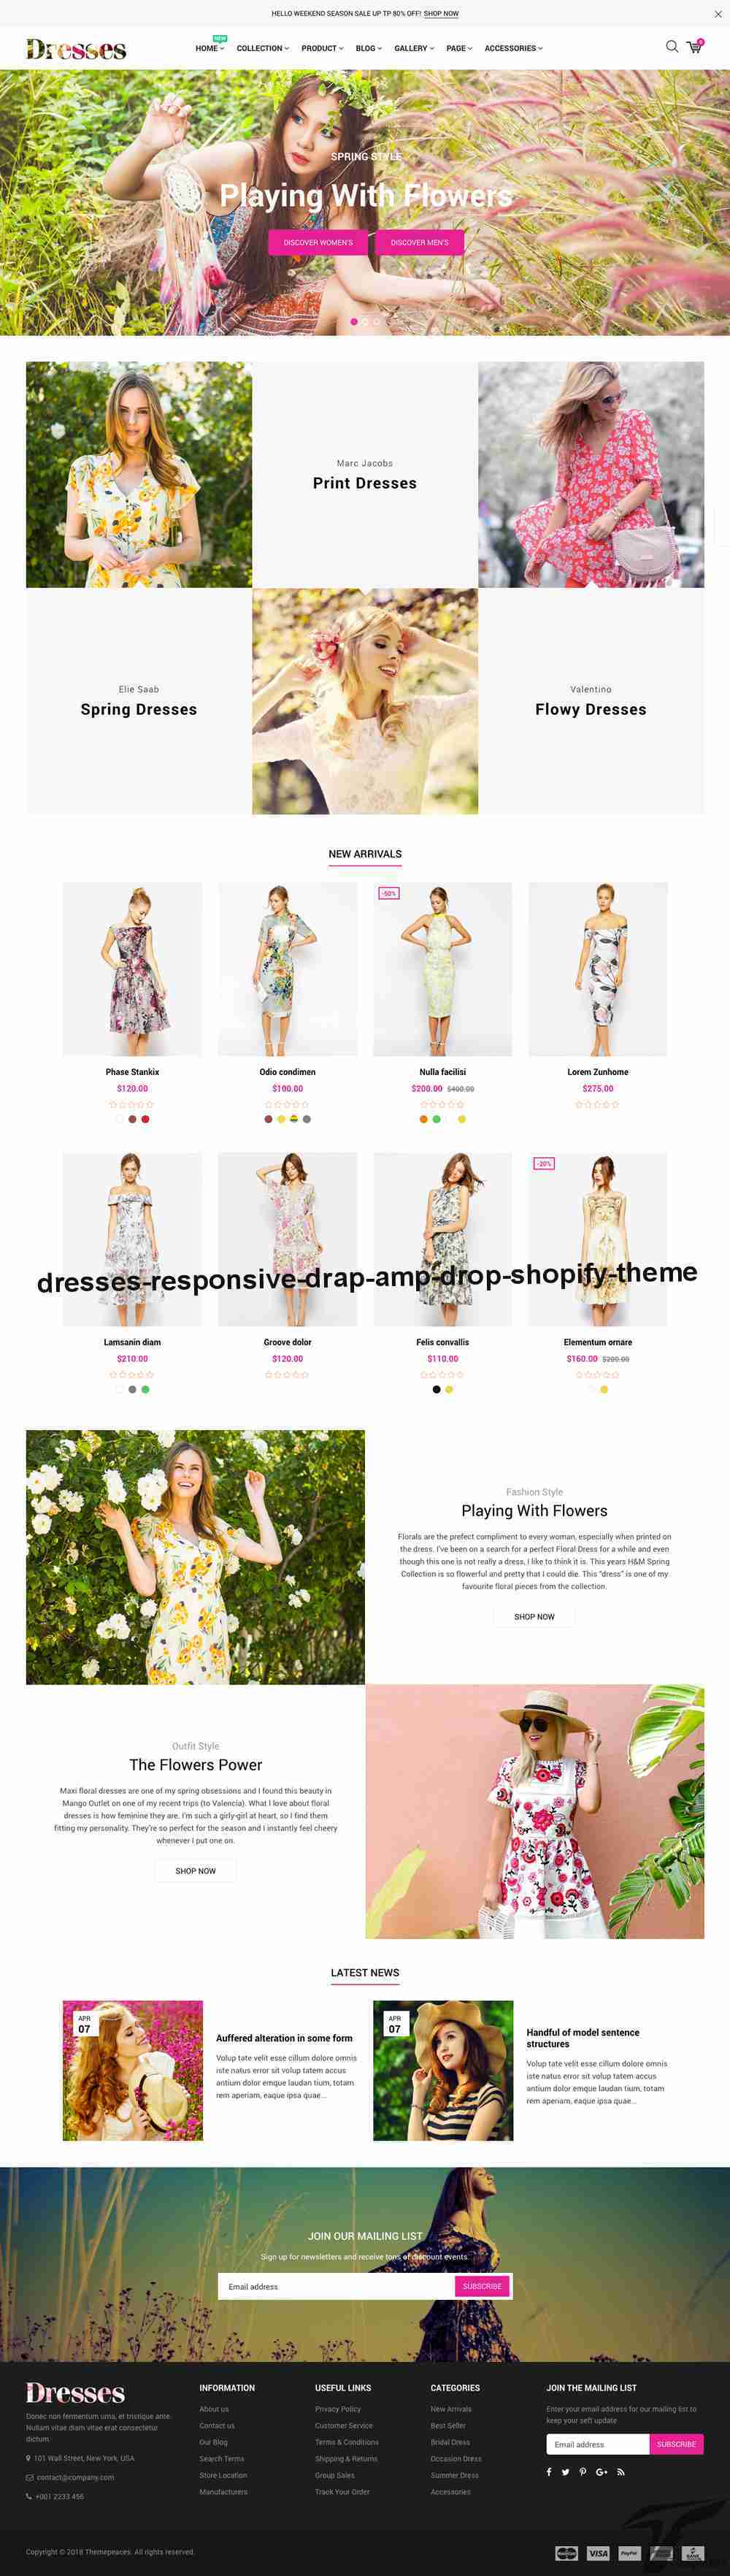 https://images.besthemes.com/images/h1_dresses-responsive-drap-amp-drop-shopify-theme5-_-247969075/preview/05_preview_home_4.jpg